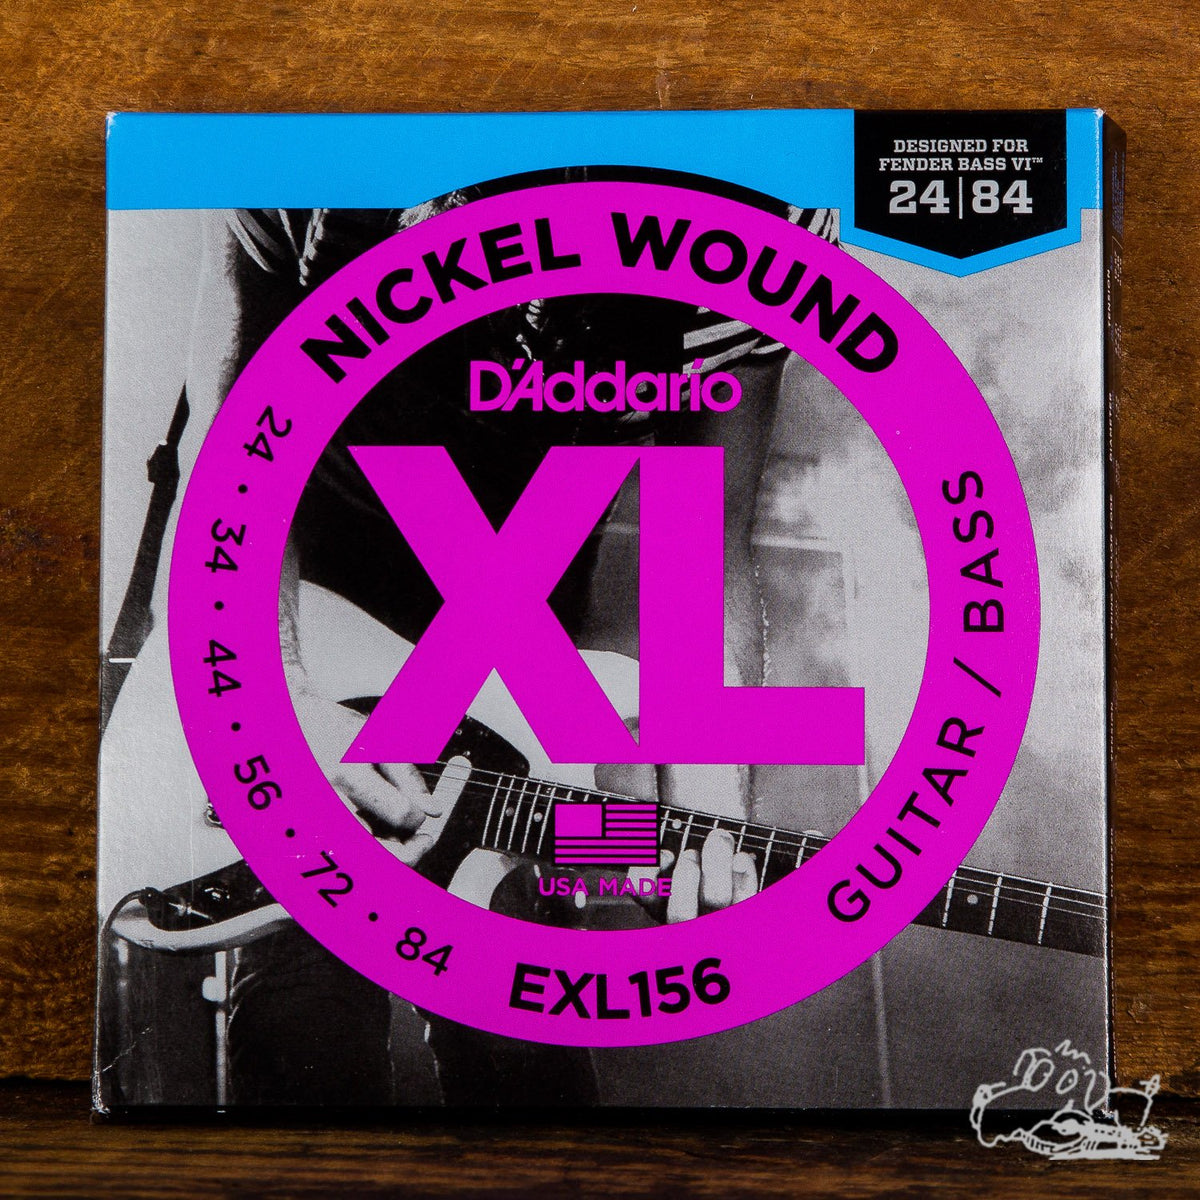 D'Addario XL Electric Bass VI Guitar Strings 24-84